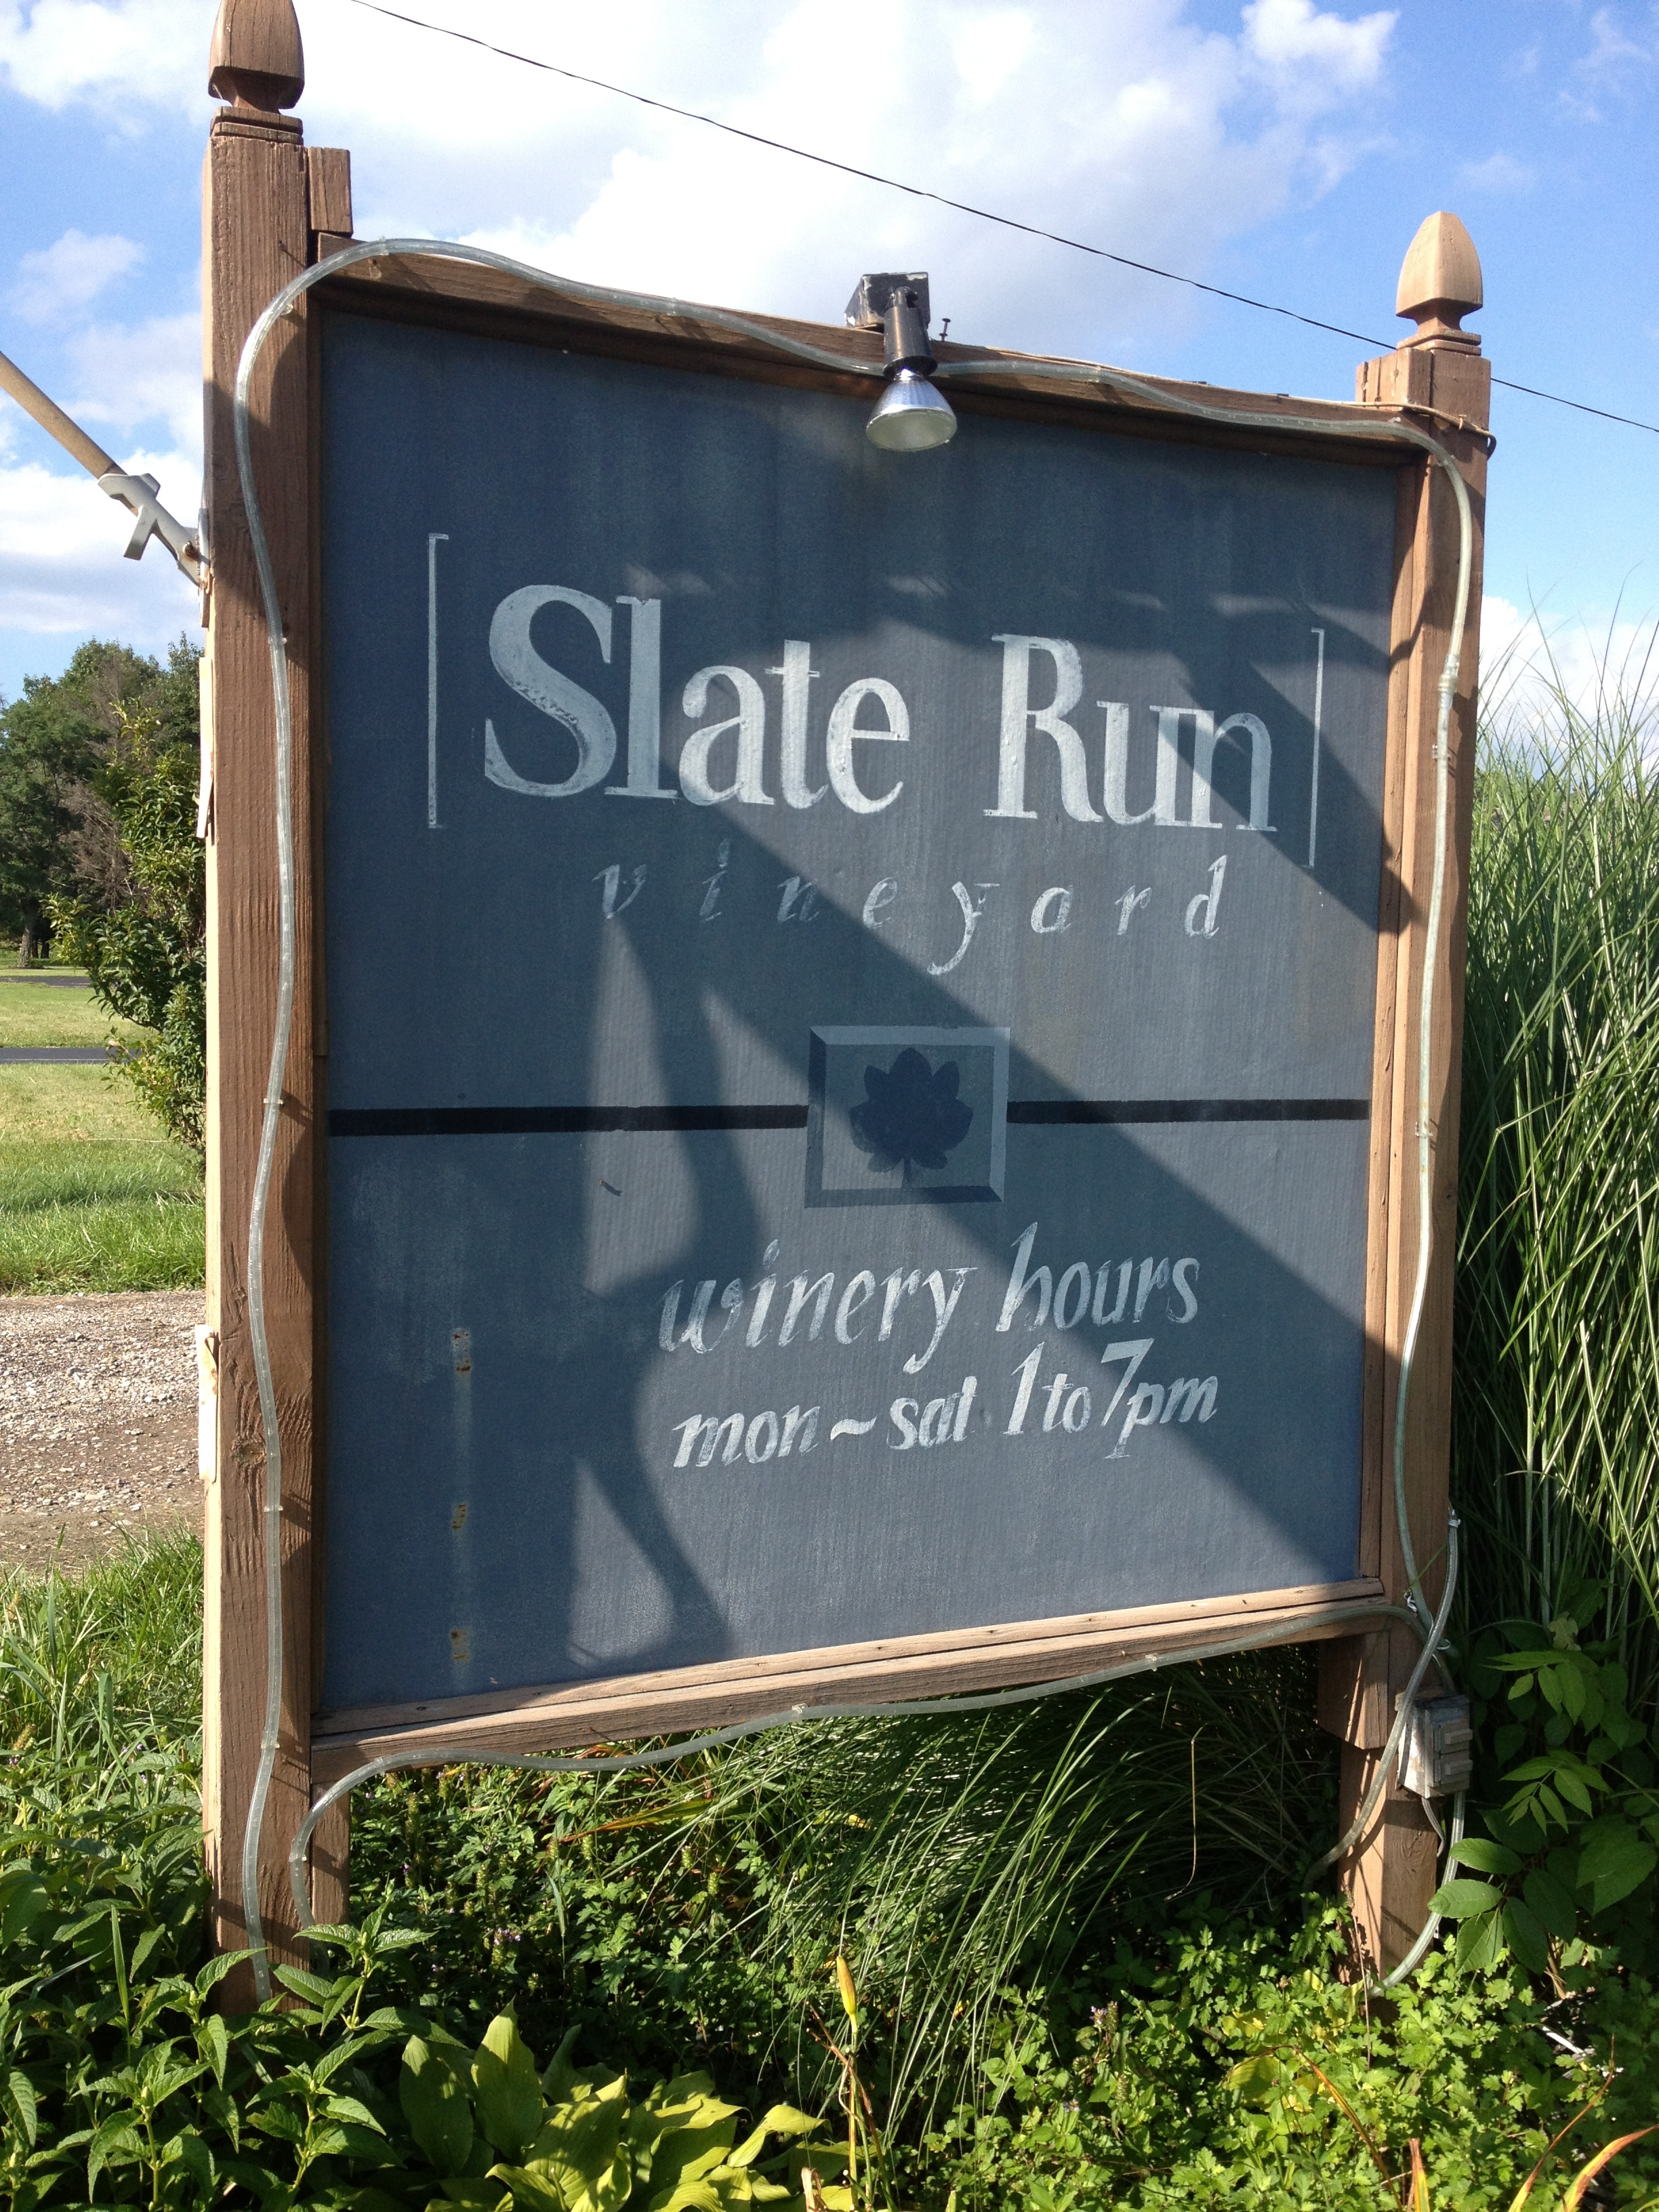 slate run chat Mingle2 is the place to meet slate run singles there are thousands of men and women looking for love or friendship in slate run, pennsylvania our free online dating.